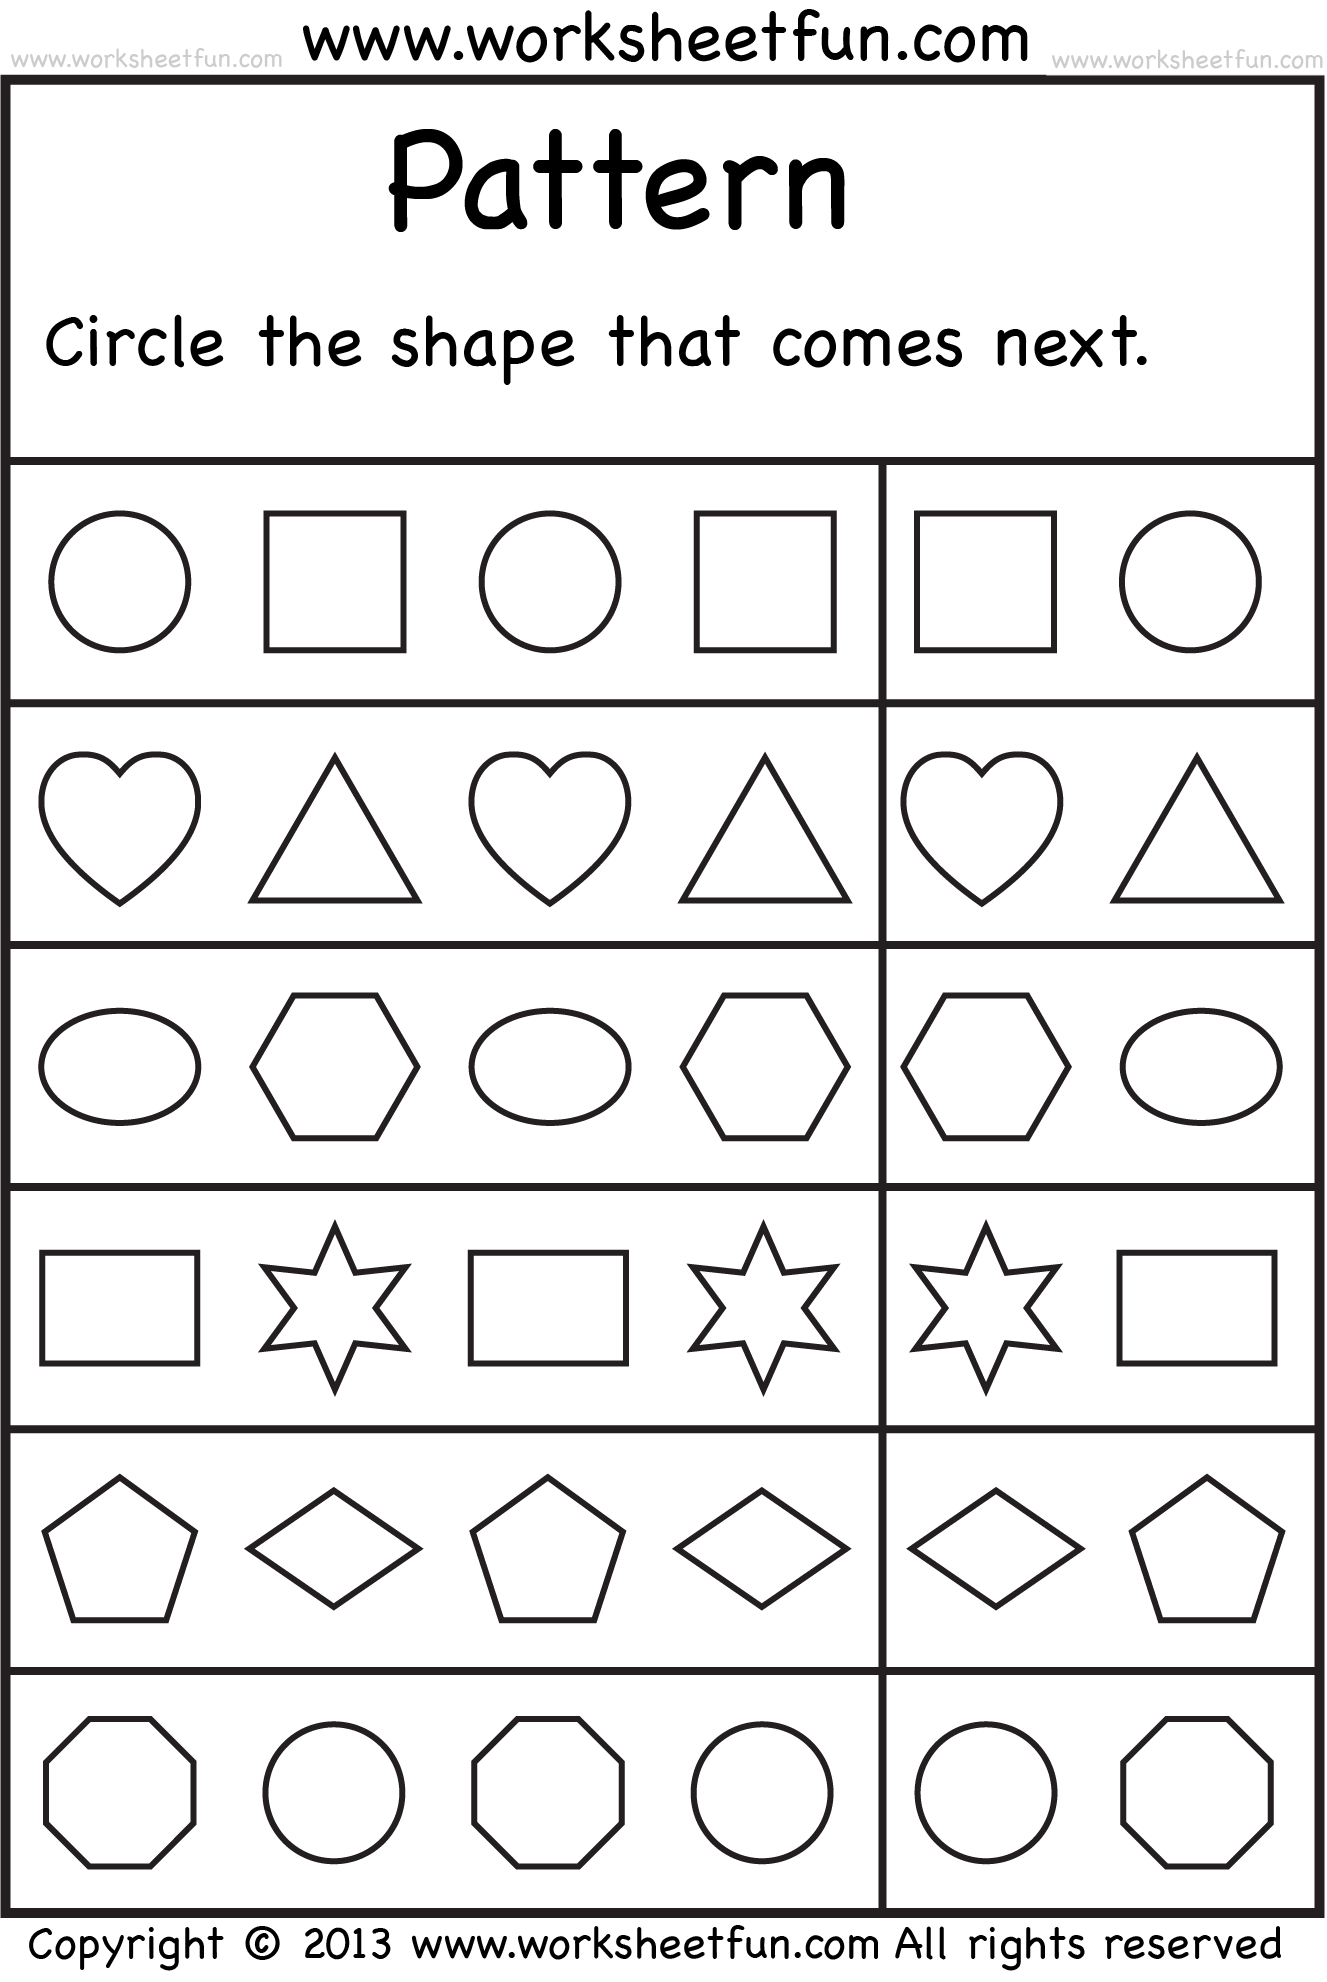 Weirdmailus  Gorgeous  Images About School Worksheets On Pinterest  Number Words  With Inspiring  Images About School Worksheets On Pinterest  Number Words Alphabet Worksheets And Free Printable Kindergarten Worksheets With Cute Spelling Grade  Worksheets Also Independent Clause Worksheet In Addition Write Steps To Print Selected Data From A Worksheet And Coin Recognition Worksheets As Well As Percentage Worksheets For Th Grade Additionally Time Conversion Worksheets Th Grade From Pinterestcom With Weirdmailus  Inspiring  Images About School Worksheets On Pinterest  Number Words  With Cute  Images About School Worksheets On Pinterest  Number Words Alphabet Worksheets And Free Printable Kindergarten Worksheets And Gorgeous Spelling Grade  Worksheets Also Independent Clause Worksheet In Addition Write Steps To Print Selected Data From A Worksheet From Pinterestcom